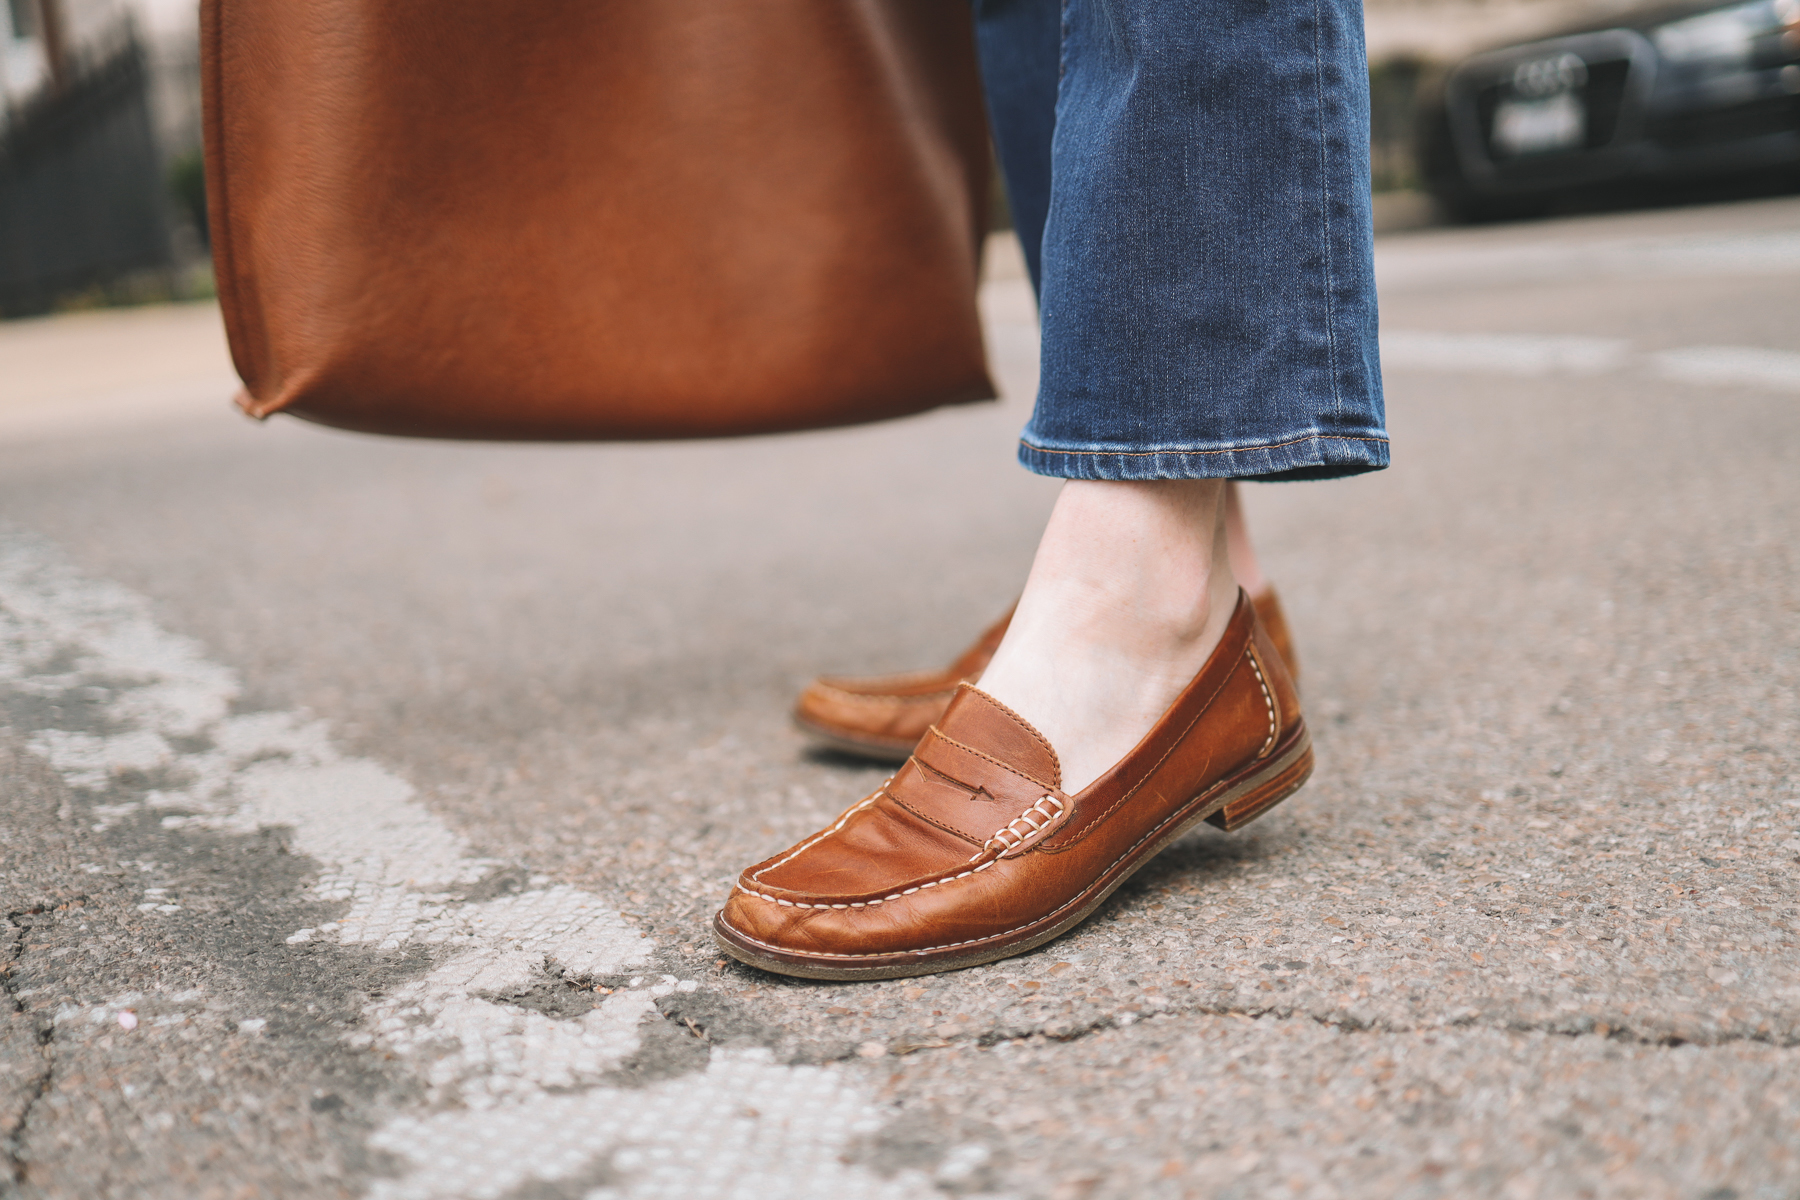 sperry loafers | Go-To Casual Spring Outfit